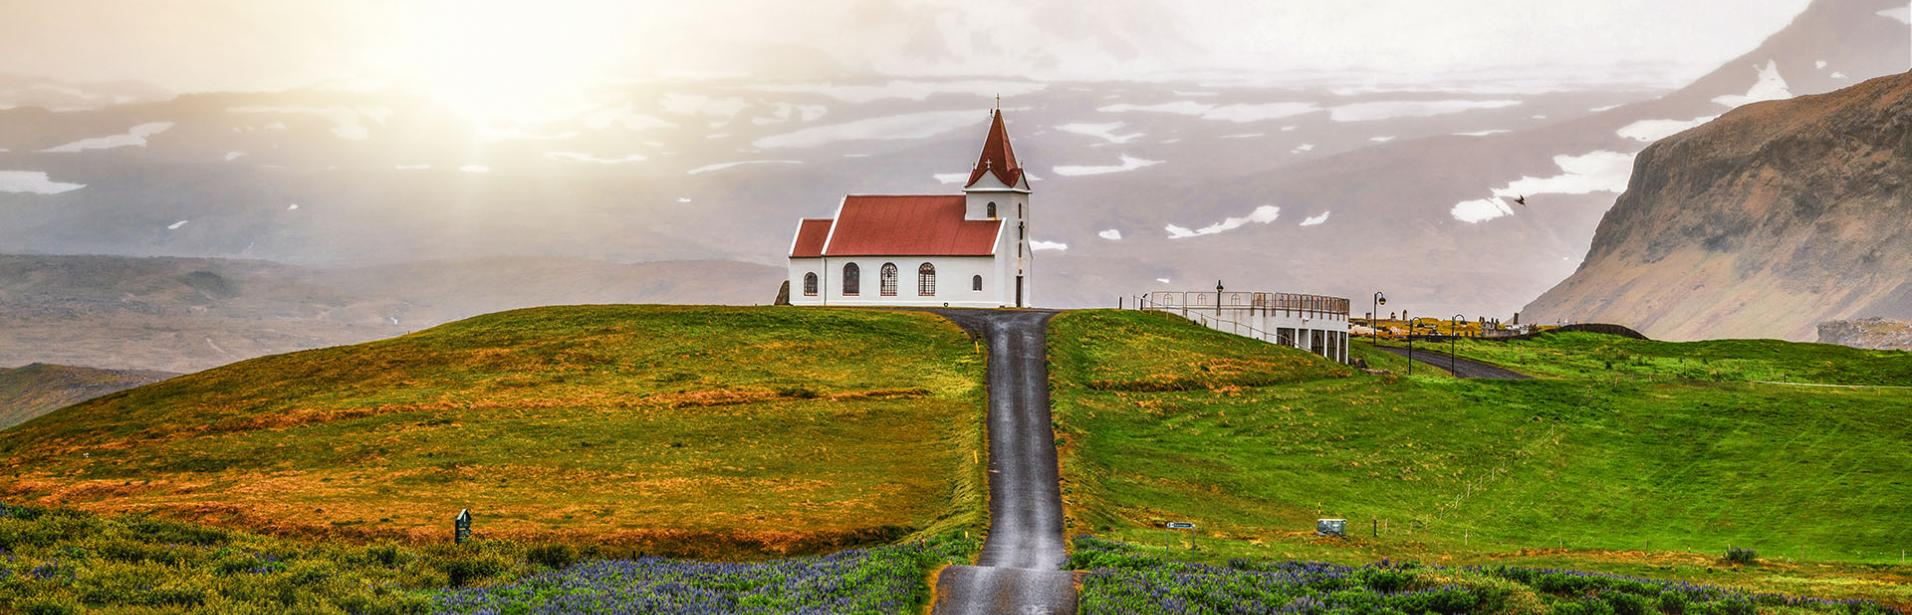 Self drive tour west Iceland: icelandic church, Flatey island, west of Iceland.